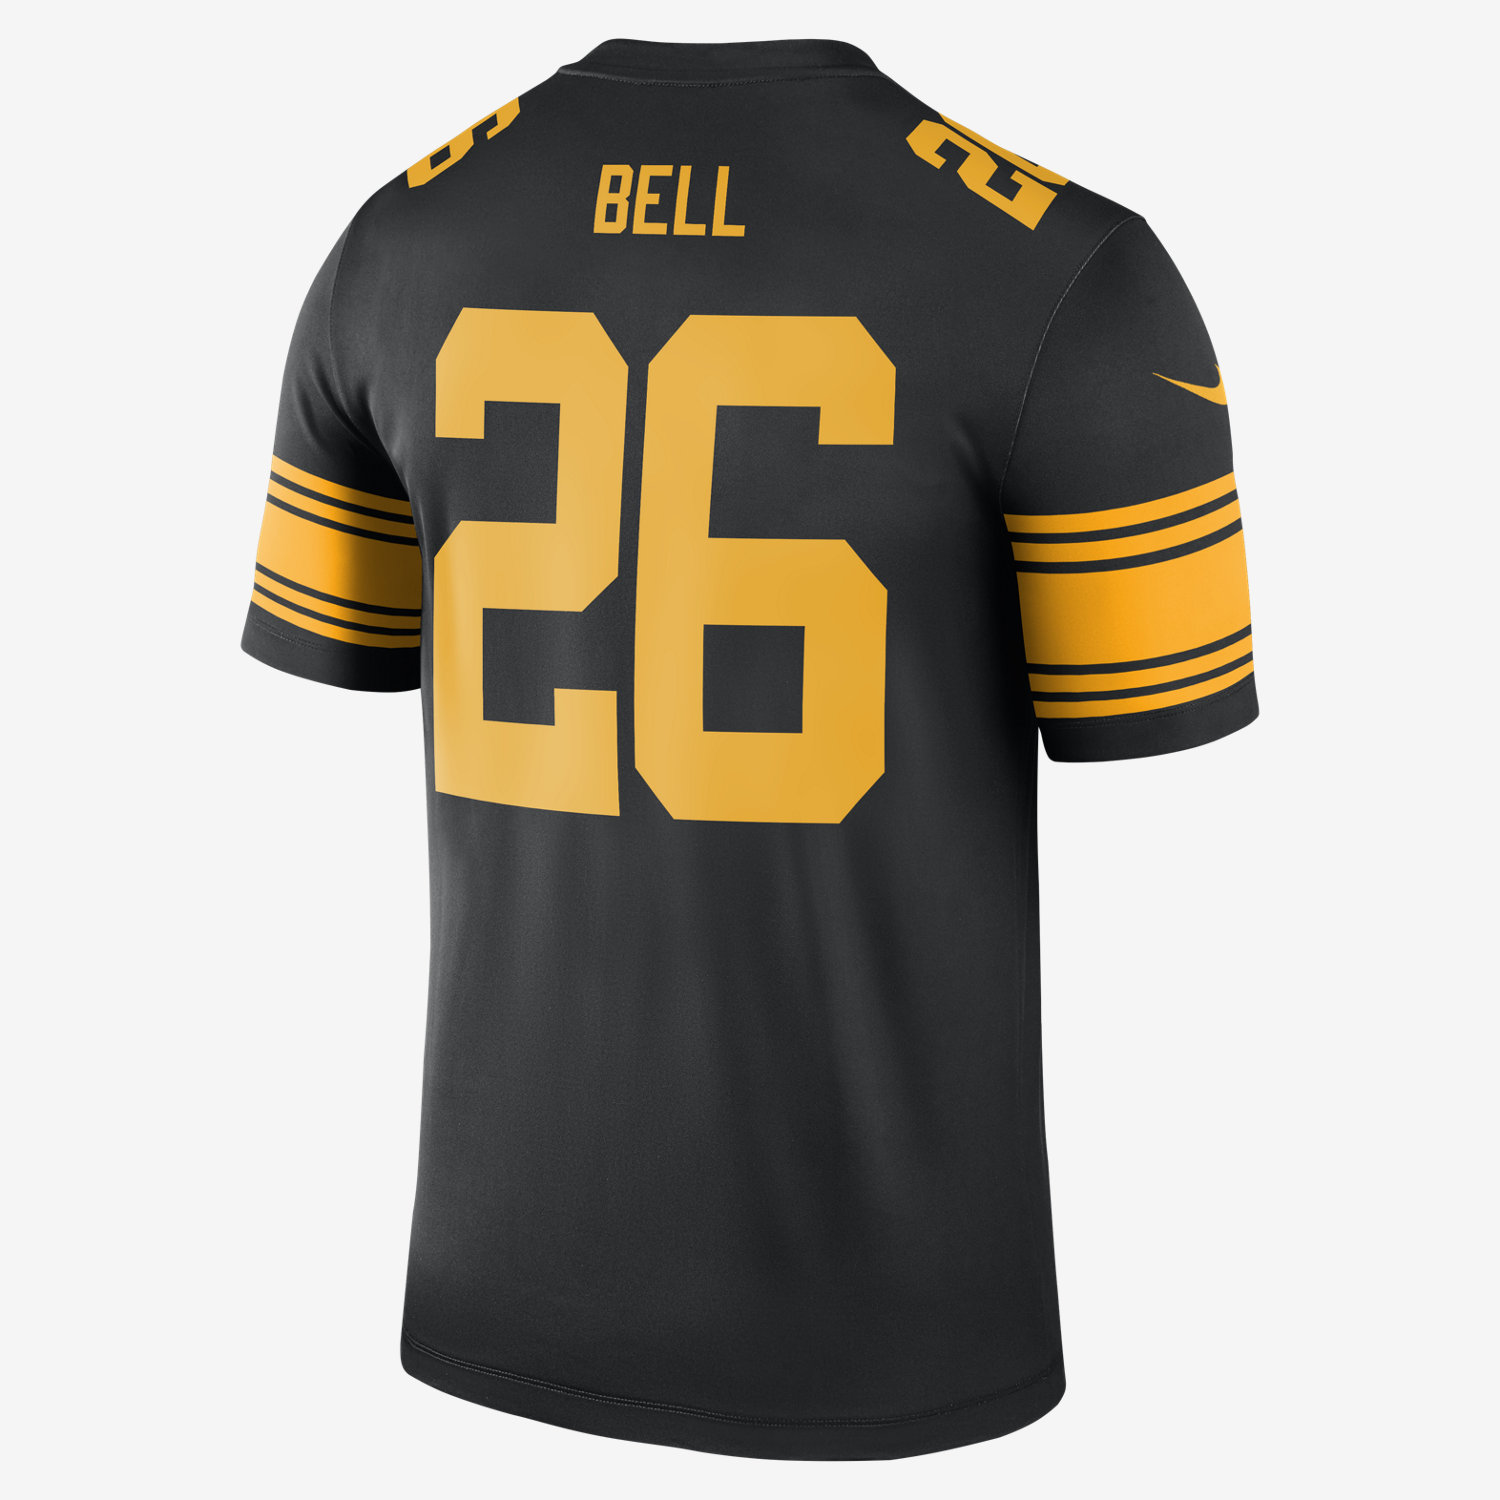 9d1532dbb91 ... nfl pittsburgh steelers color rush legend leveon bell mens football  jersey. nike .